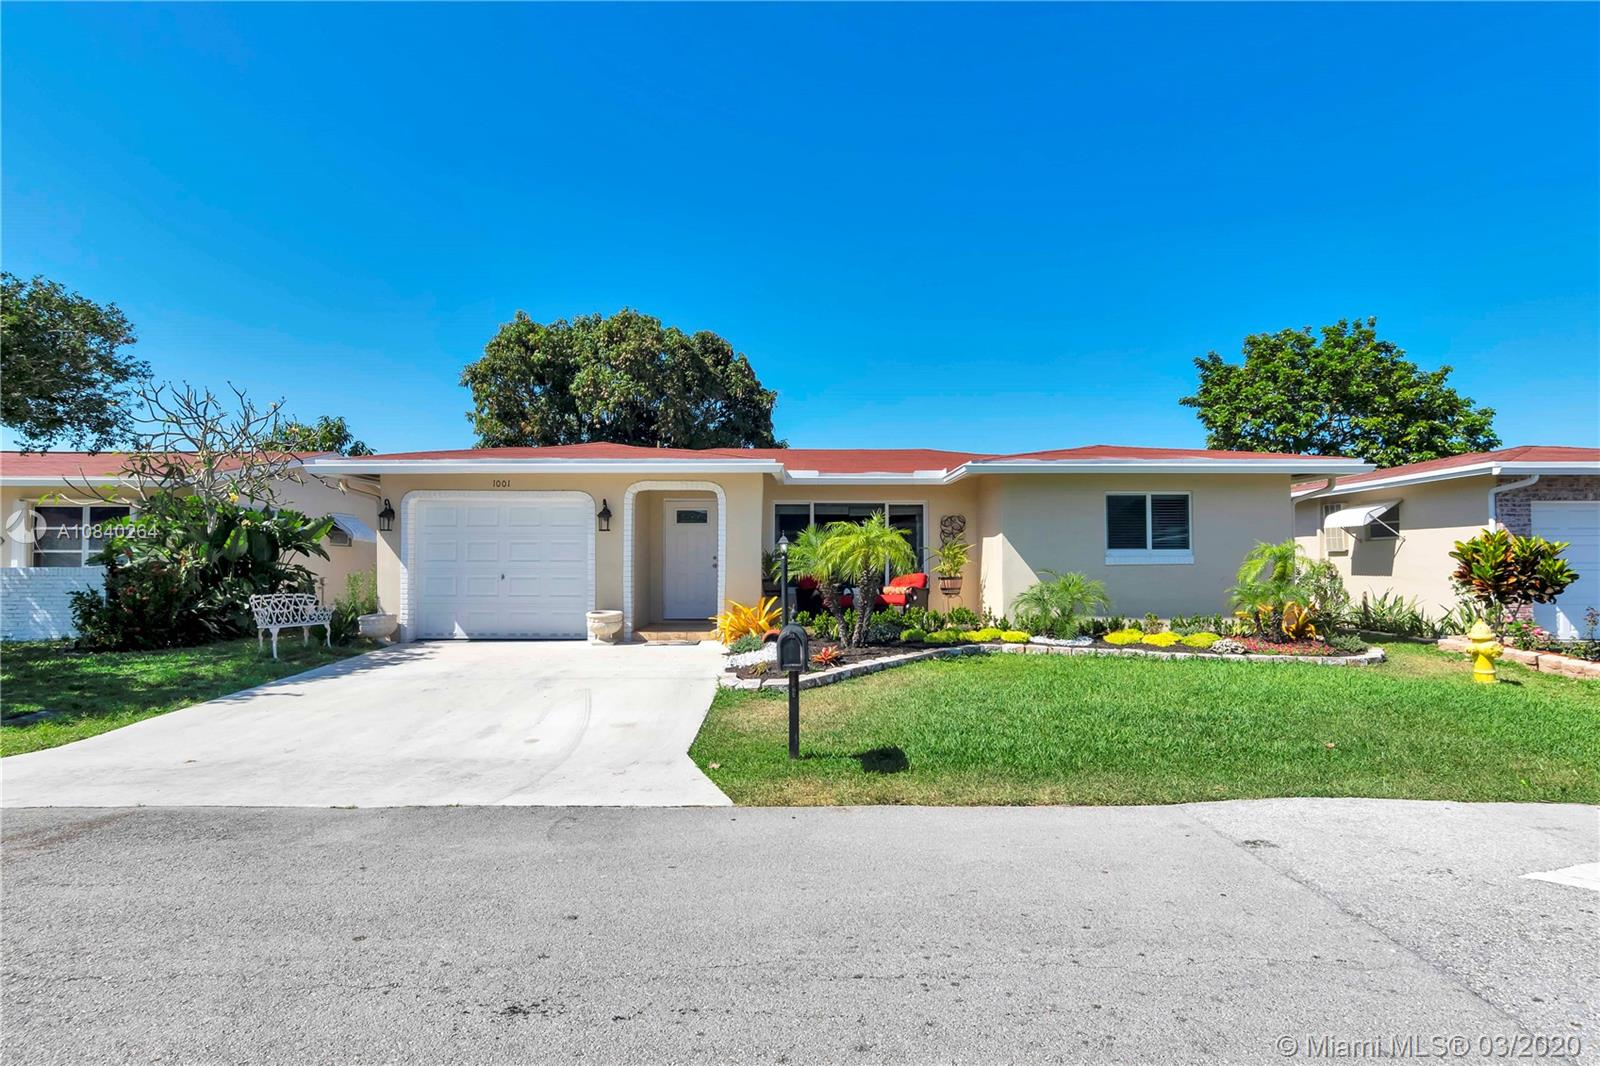 Beautifully upgraded 2 Bed 2 Bath plus bonus space!! Completely remodeled, all impact windows and doors including  garage door, porcelain floors in all living areas, carpet in bedrooms. Plenty of natural lighting. Kitchen, bathrooms, roof and air condition was replaced less than 8 years ago. Low HOA fees which include cable, lawn maintenance and exterior painting every 5 years. This home shows excellent, this is truly a house for someone that just wants to move in and not worry about doing any remodeling. Best in the area, buyer will love it. Come and make this beauty your home sweet home.